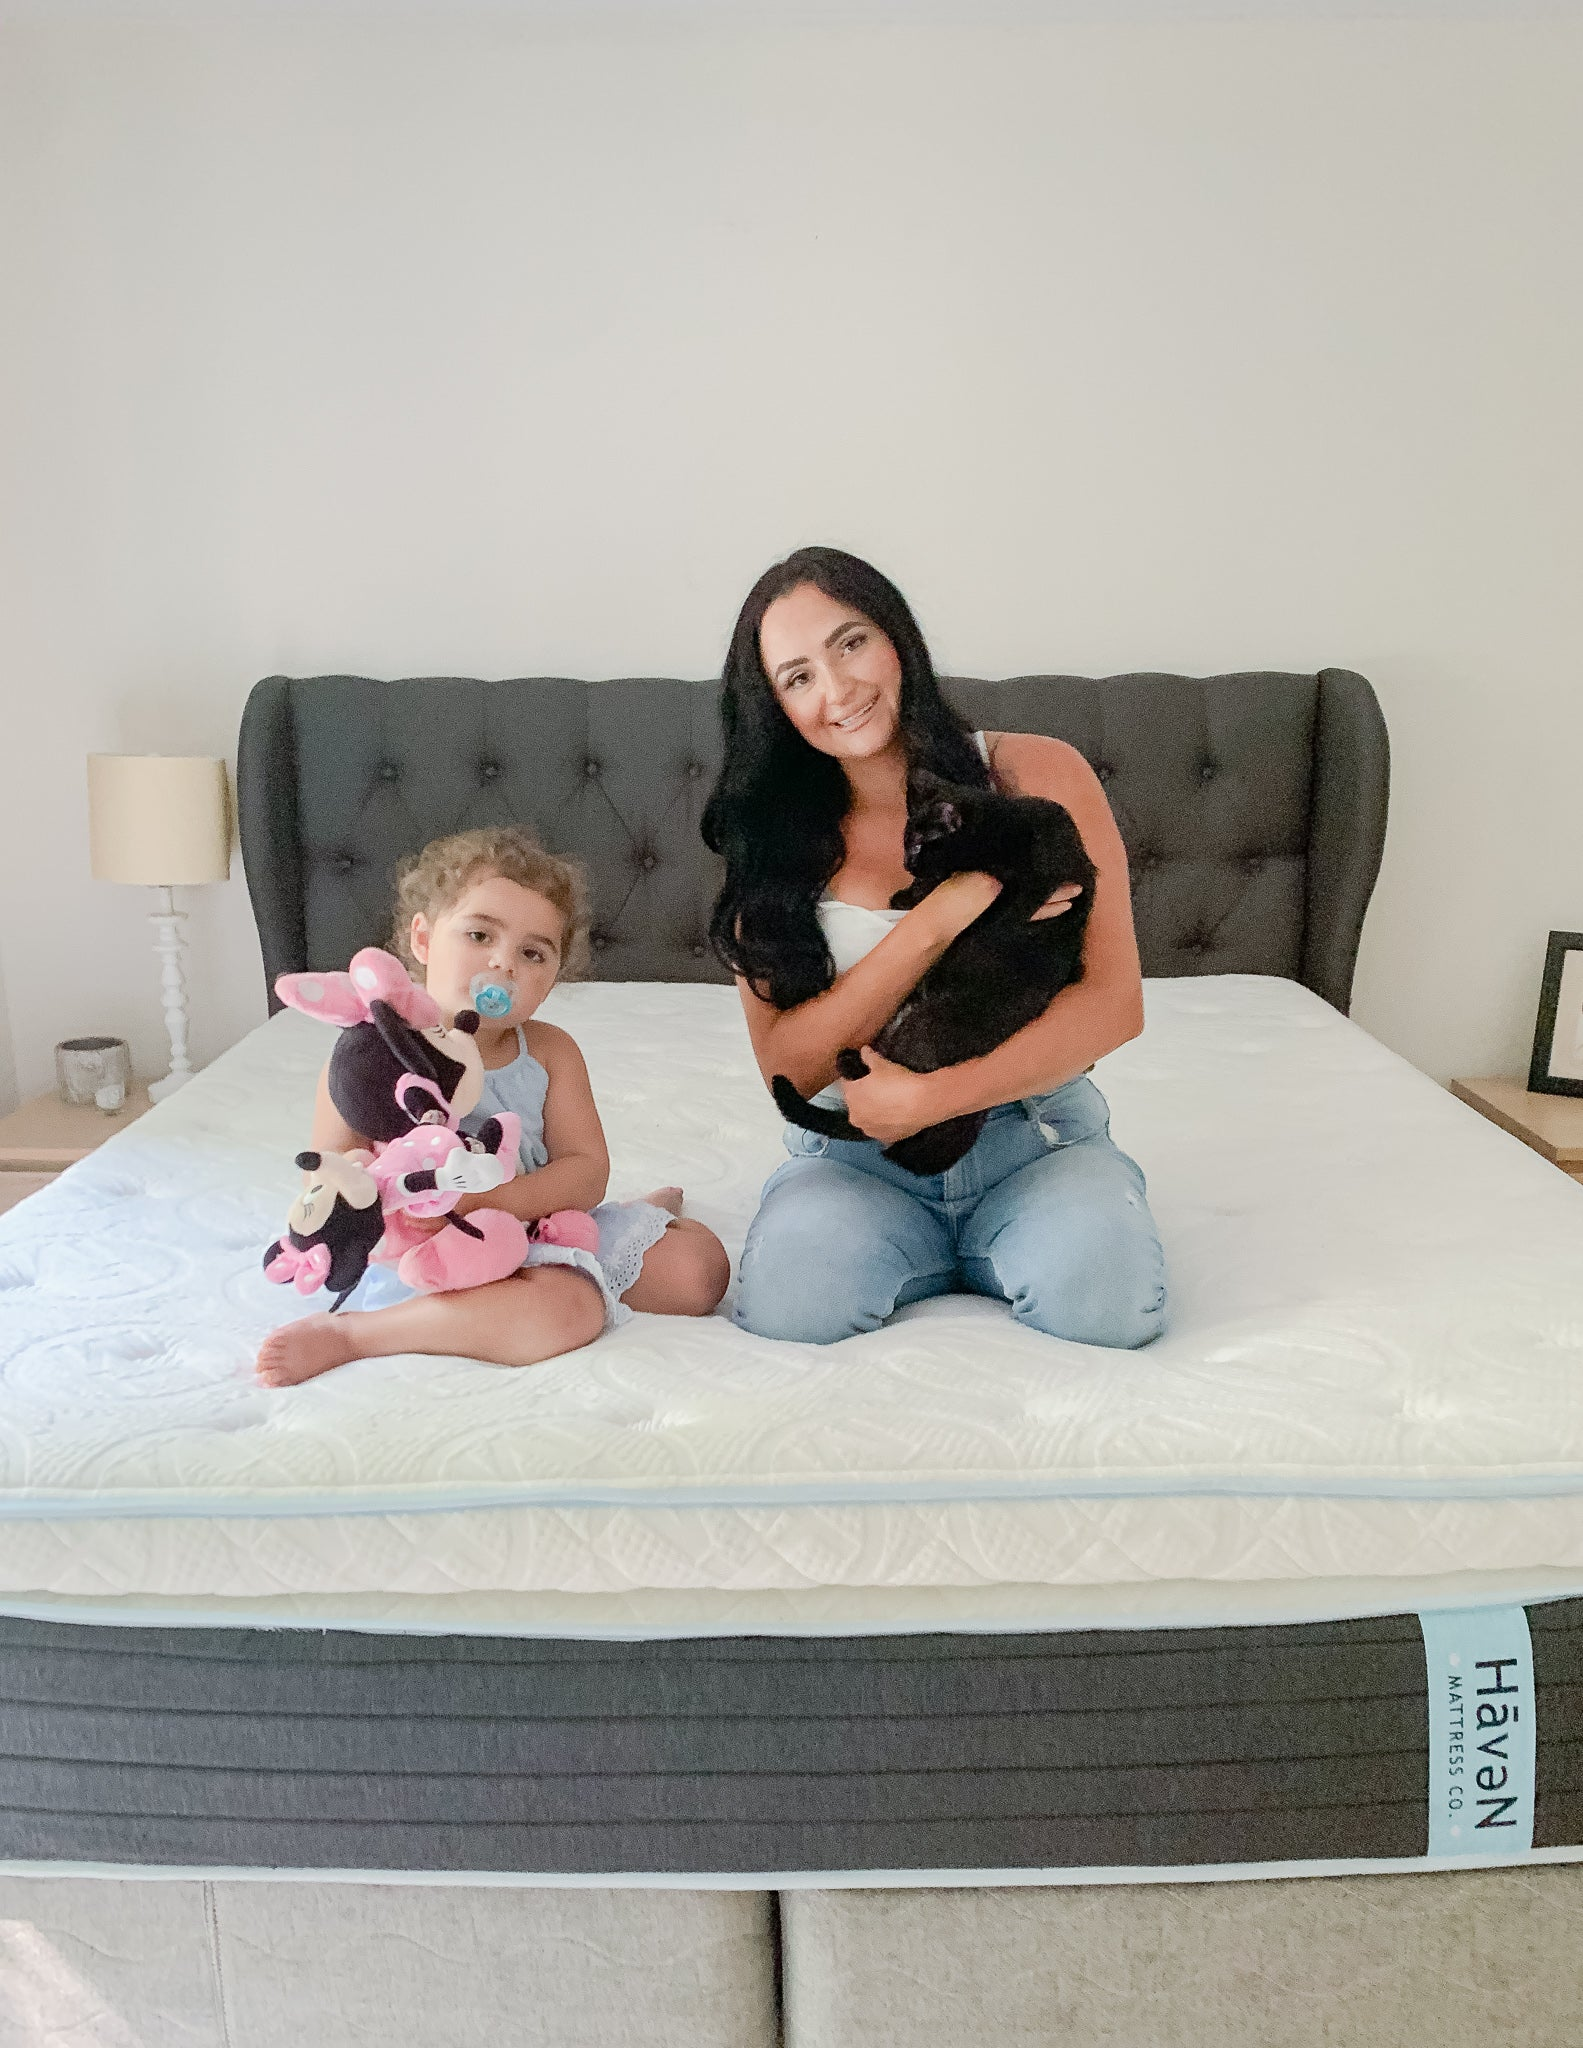 Stephanie Vainer and cat and daughter on haven mattress